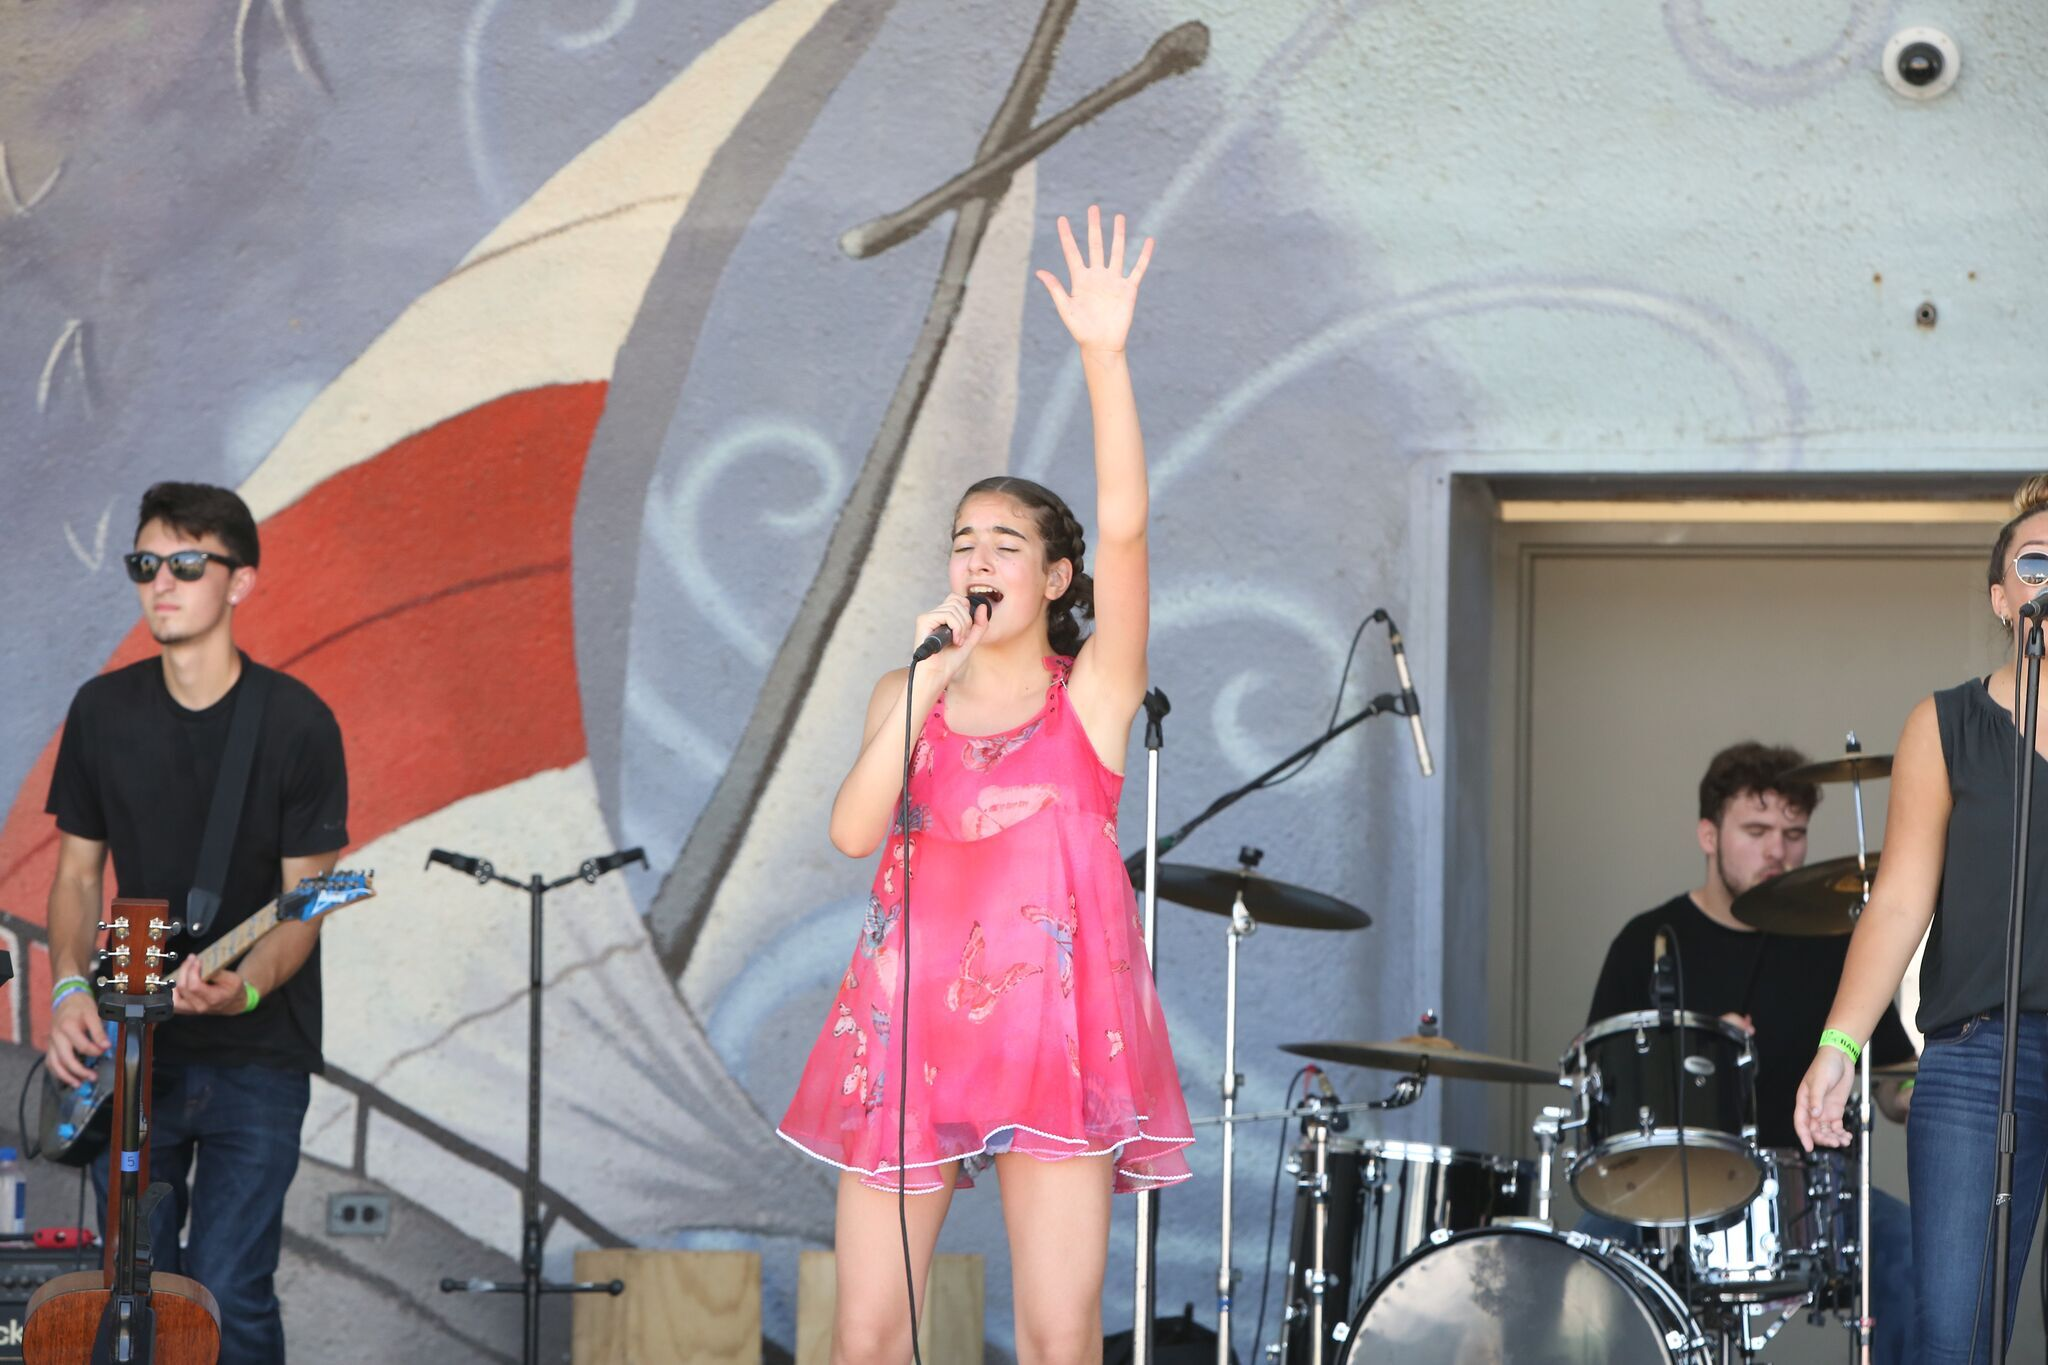 Ava performance at great south bay .jpg